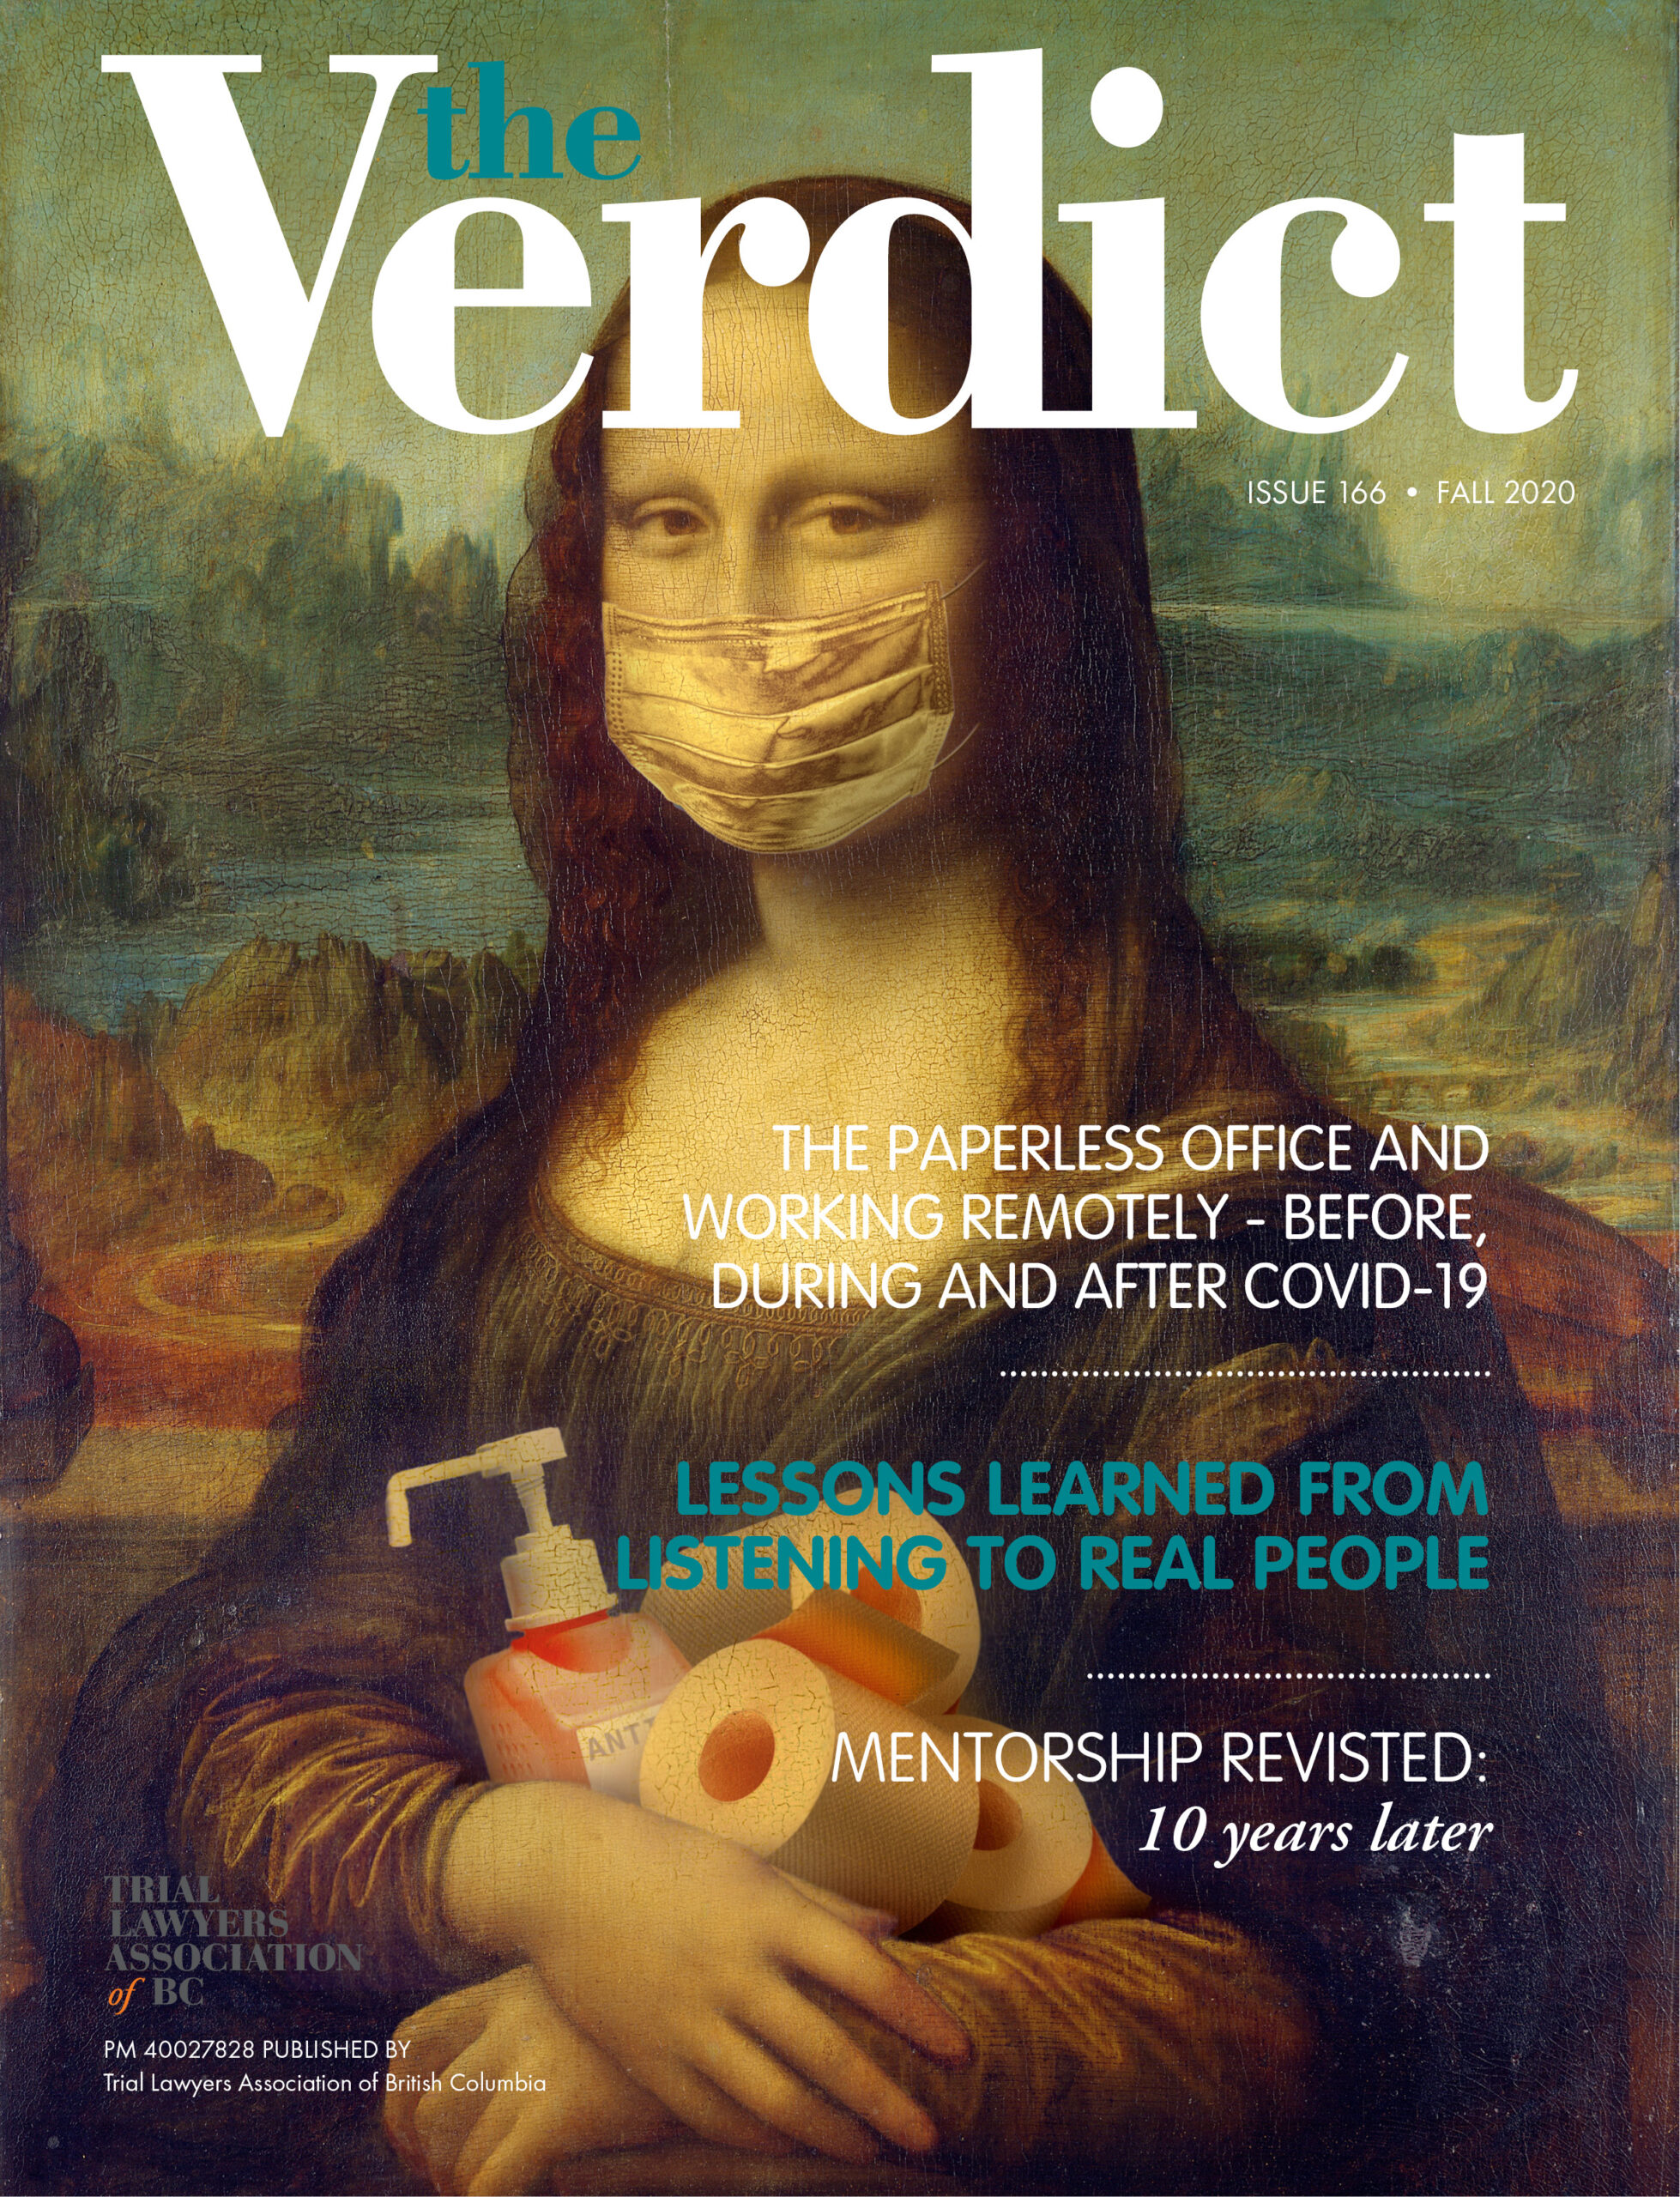 the Verdict issue 166 cover